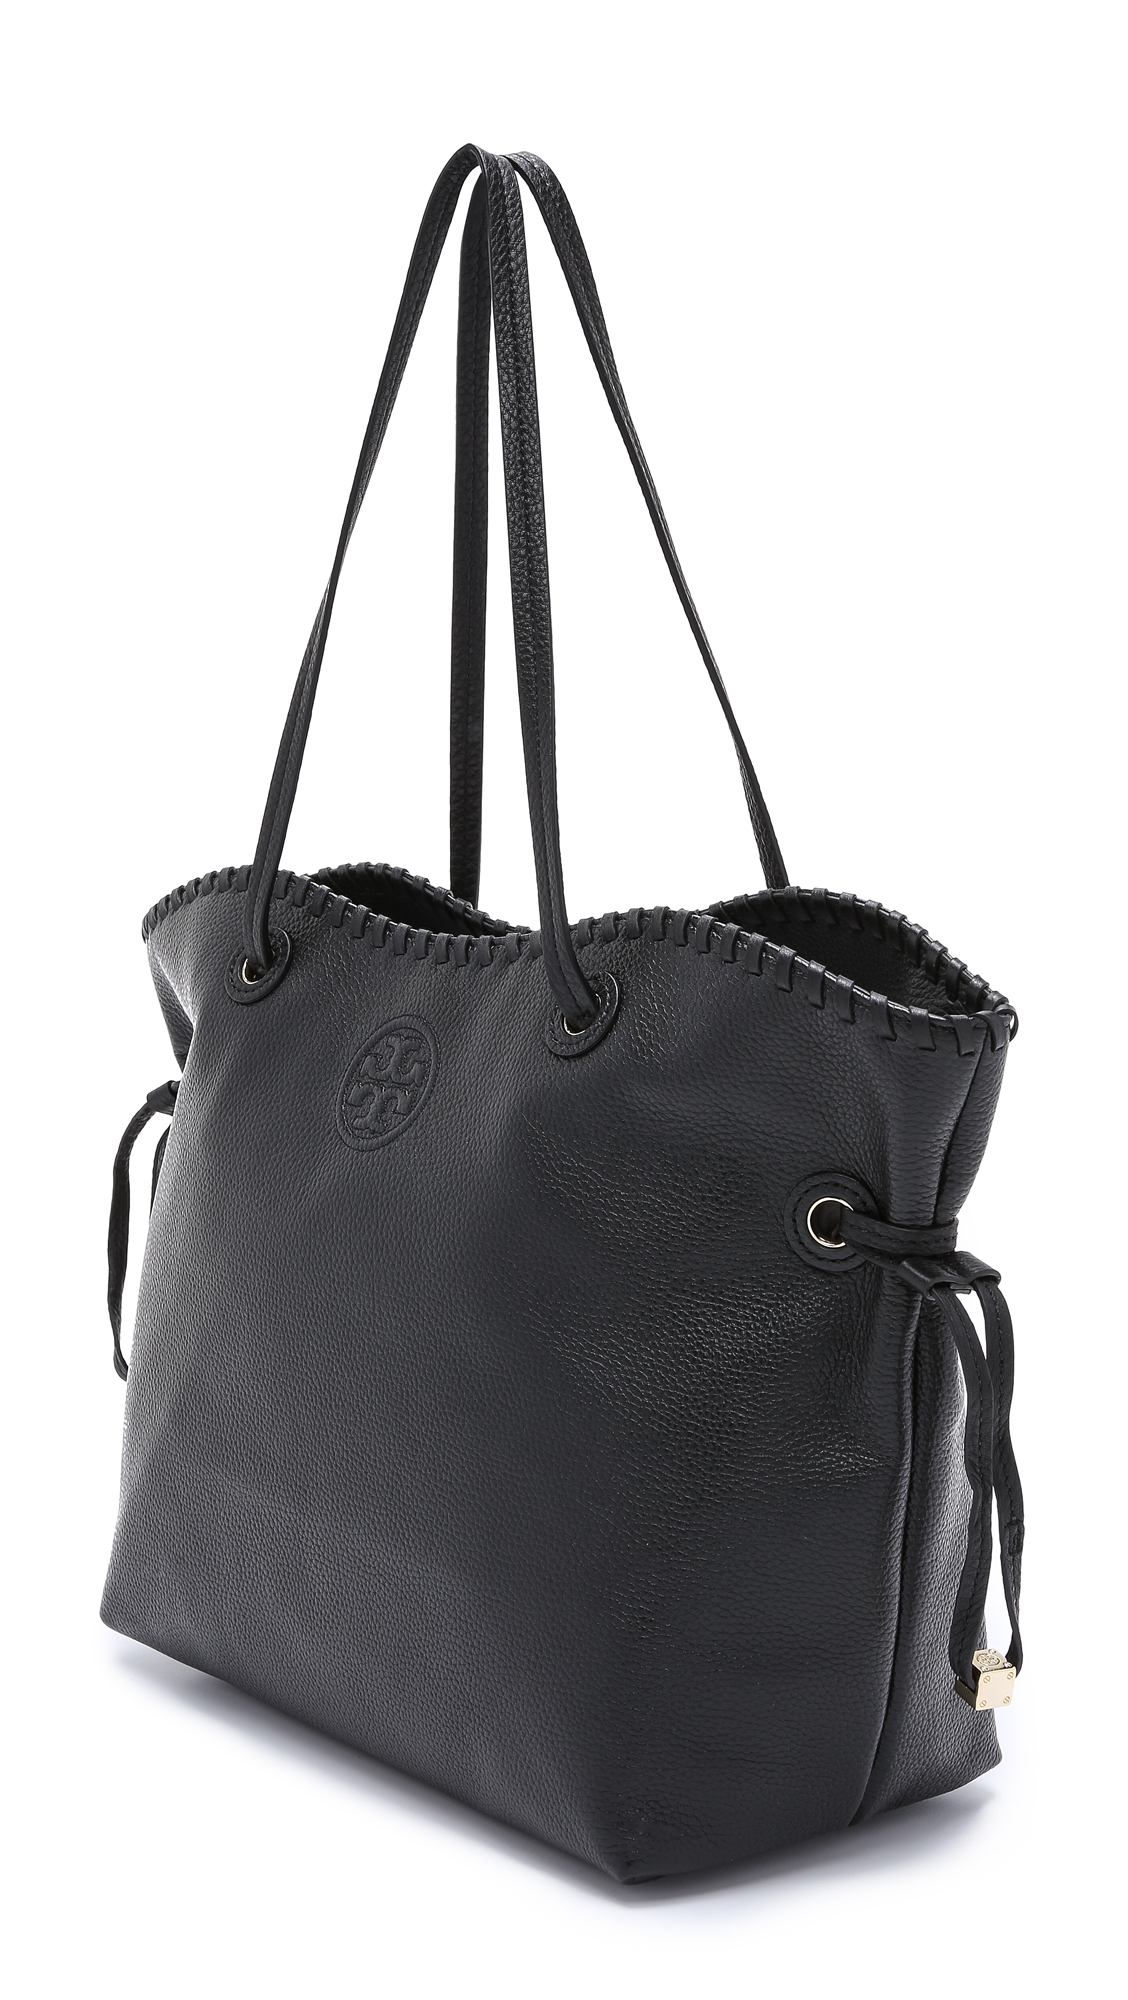 0ca4d95846d Lyst - Tory Burch Marion Slouchy Tote - Black in Black